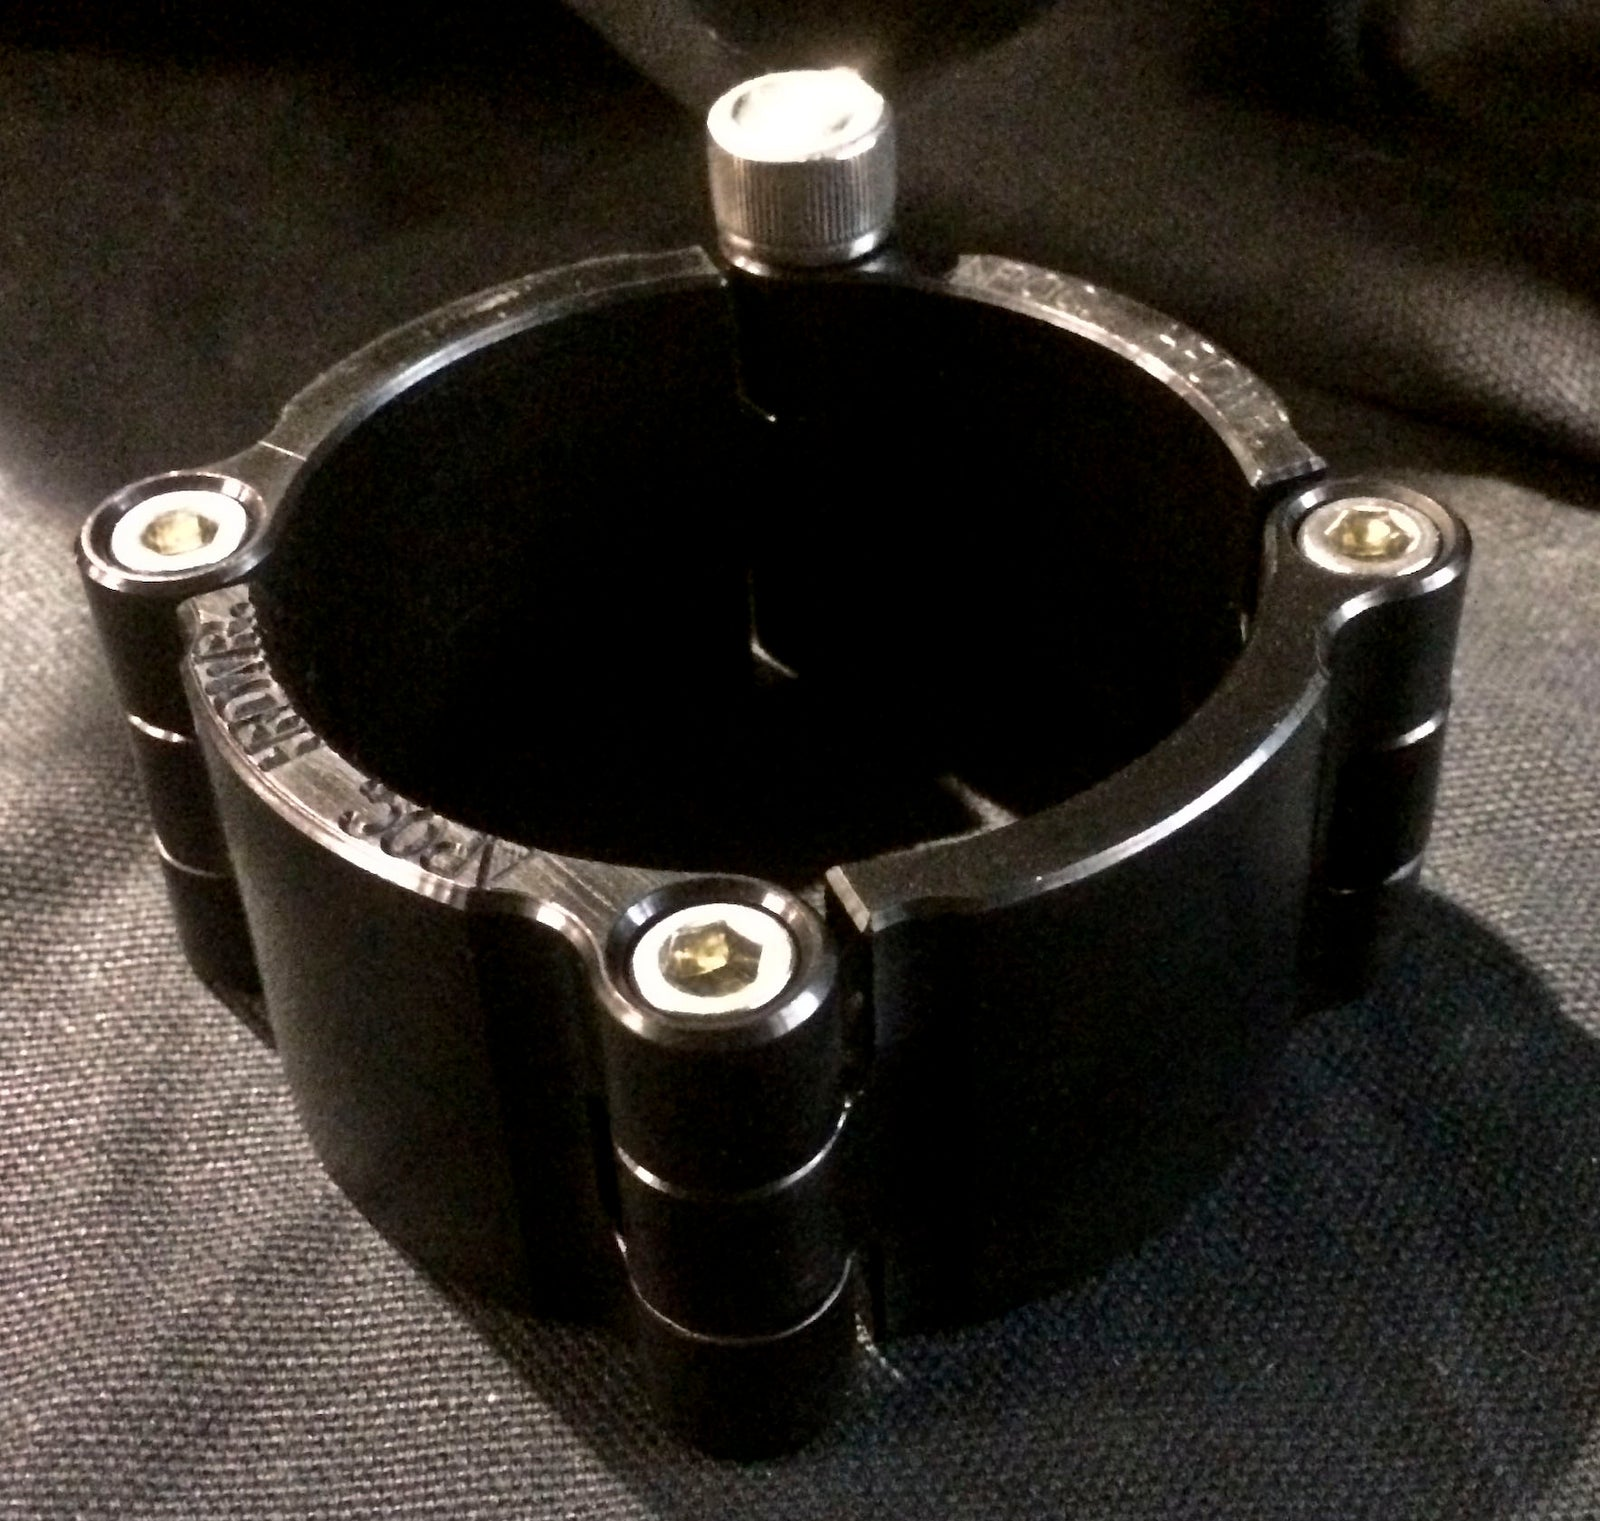 Machined Aluminum Cuff - Black Anodized